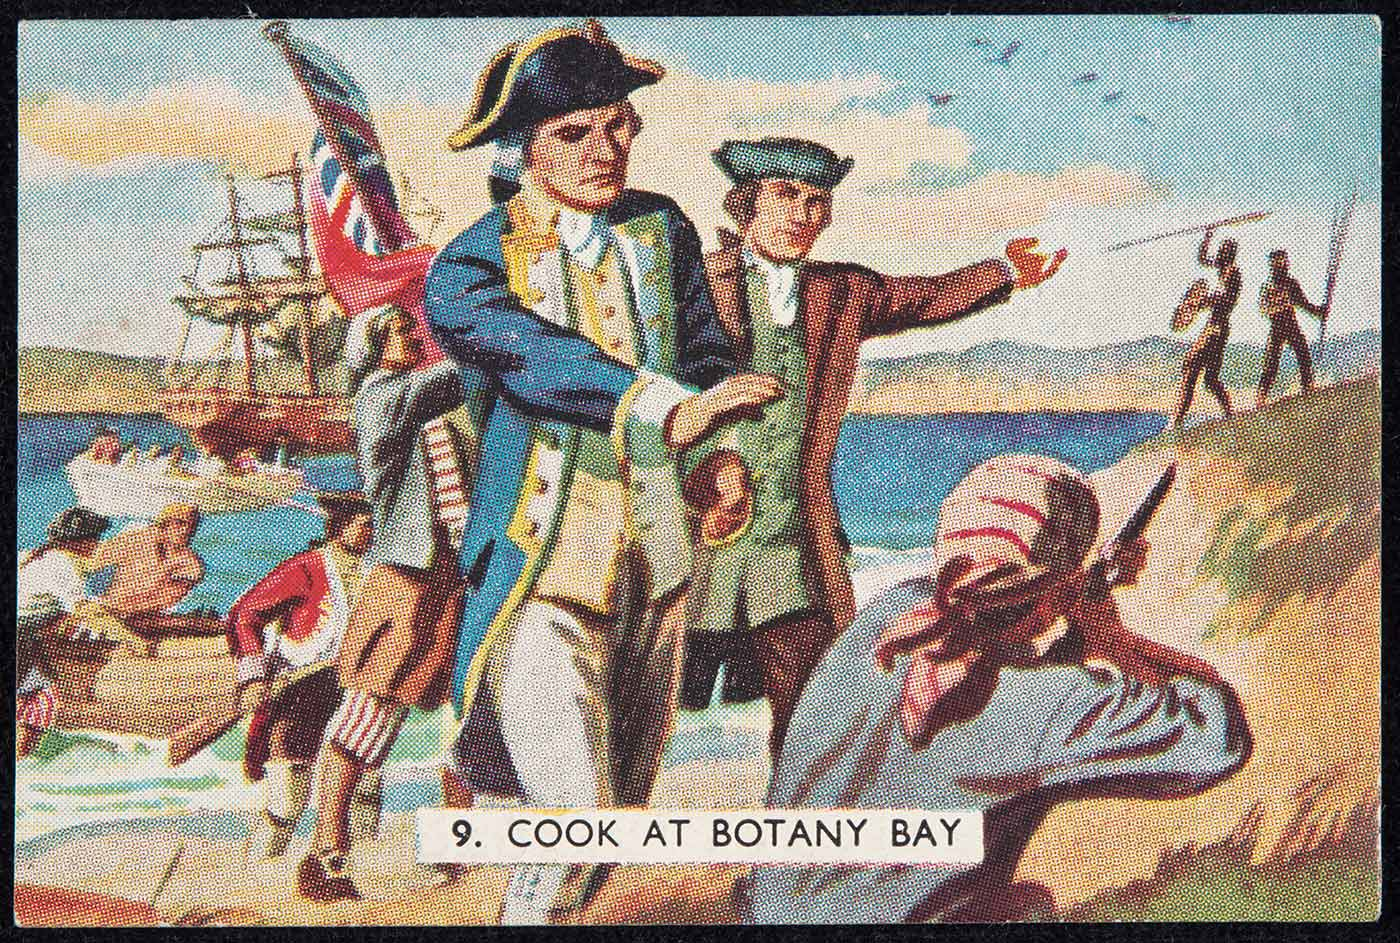 A swap card titled '9. Cook at Botany Bay'. It is from a series of swapcards produced by The Sanitarium Health Food Company titled 'The Story of the Pacific'. The colour picture shows a group of men on the shore in the foreground, one pointing a rifle at two Indigenous men with spears in the background. Captain Cook is shown with his hand raised as if to halt the actions of the man with the rifle. - click to view larger image